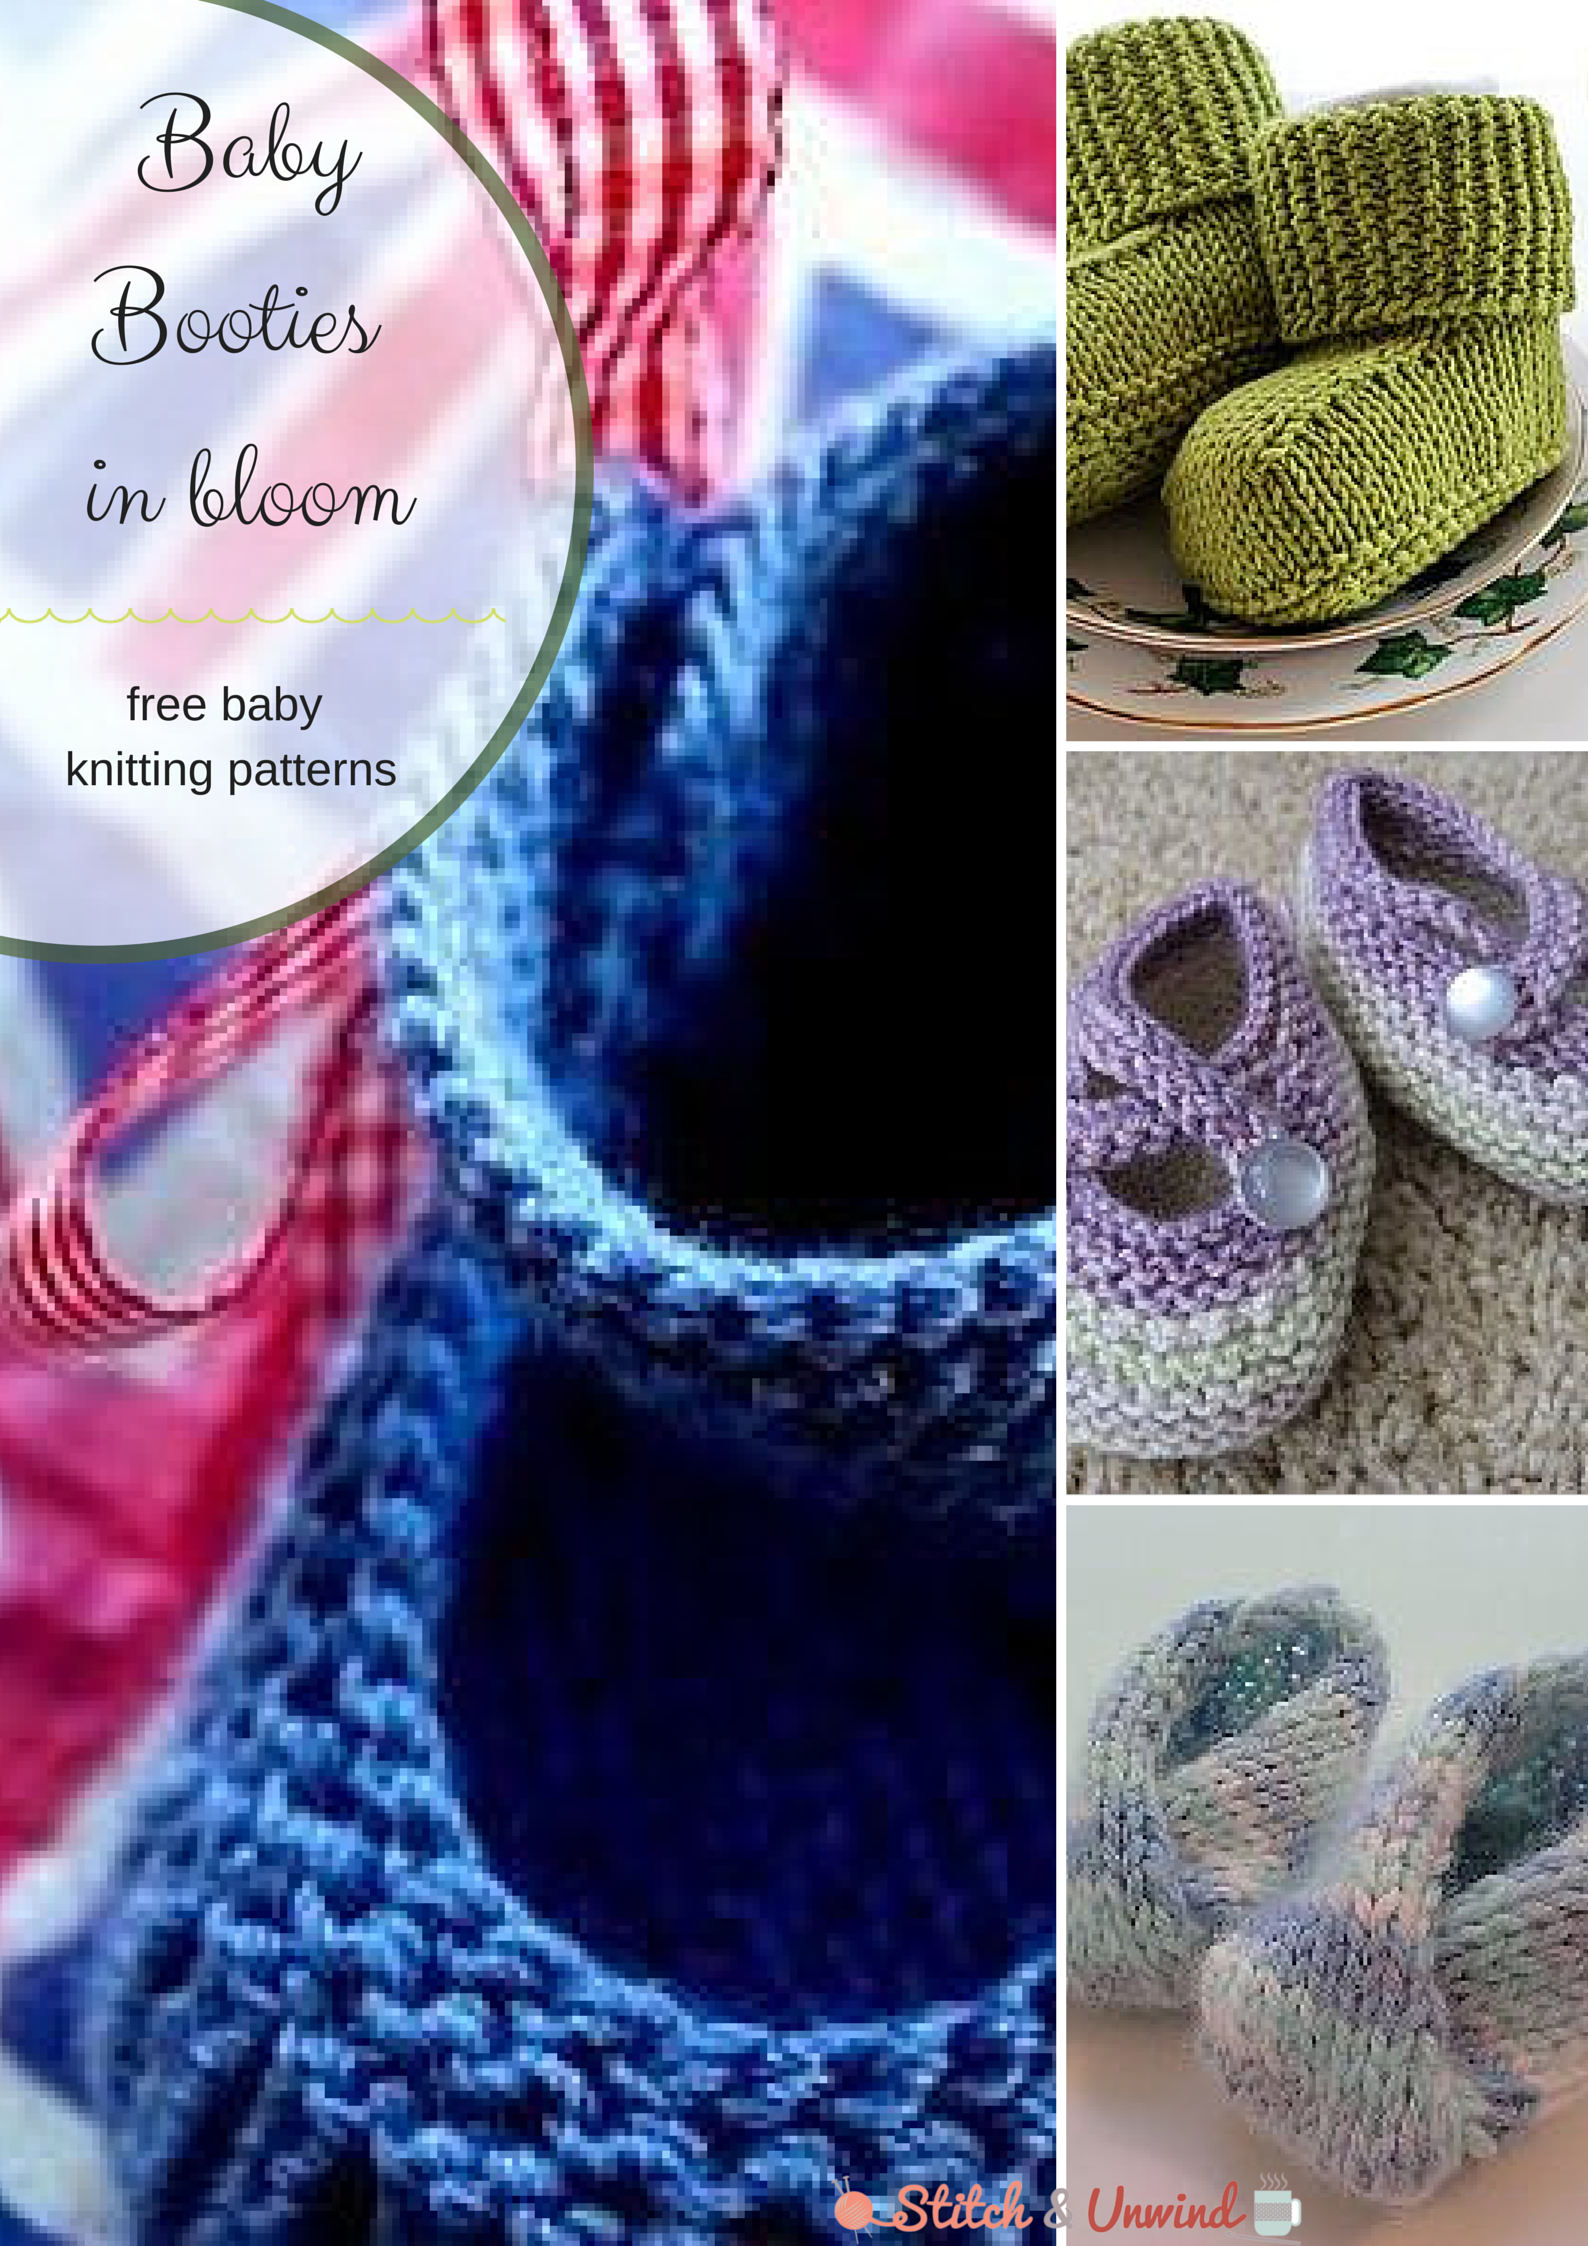 Baby Booties in Bloom - Stitch and Unwind